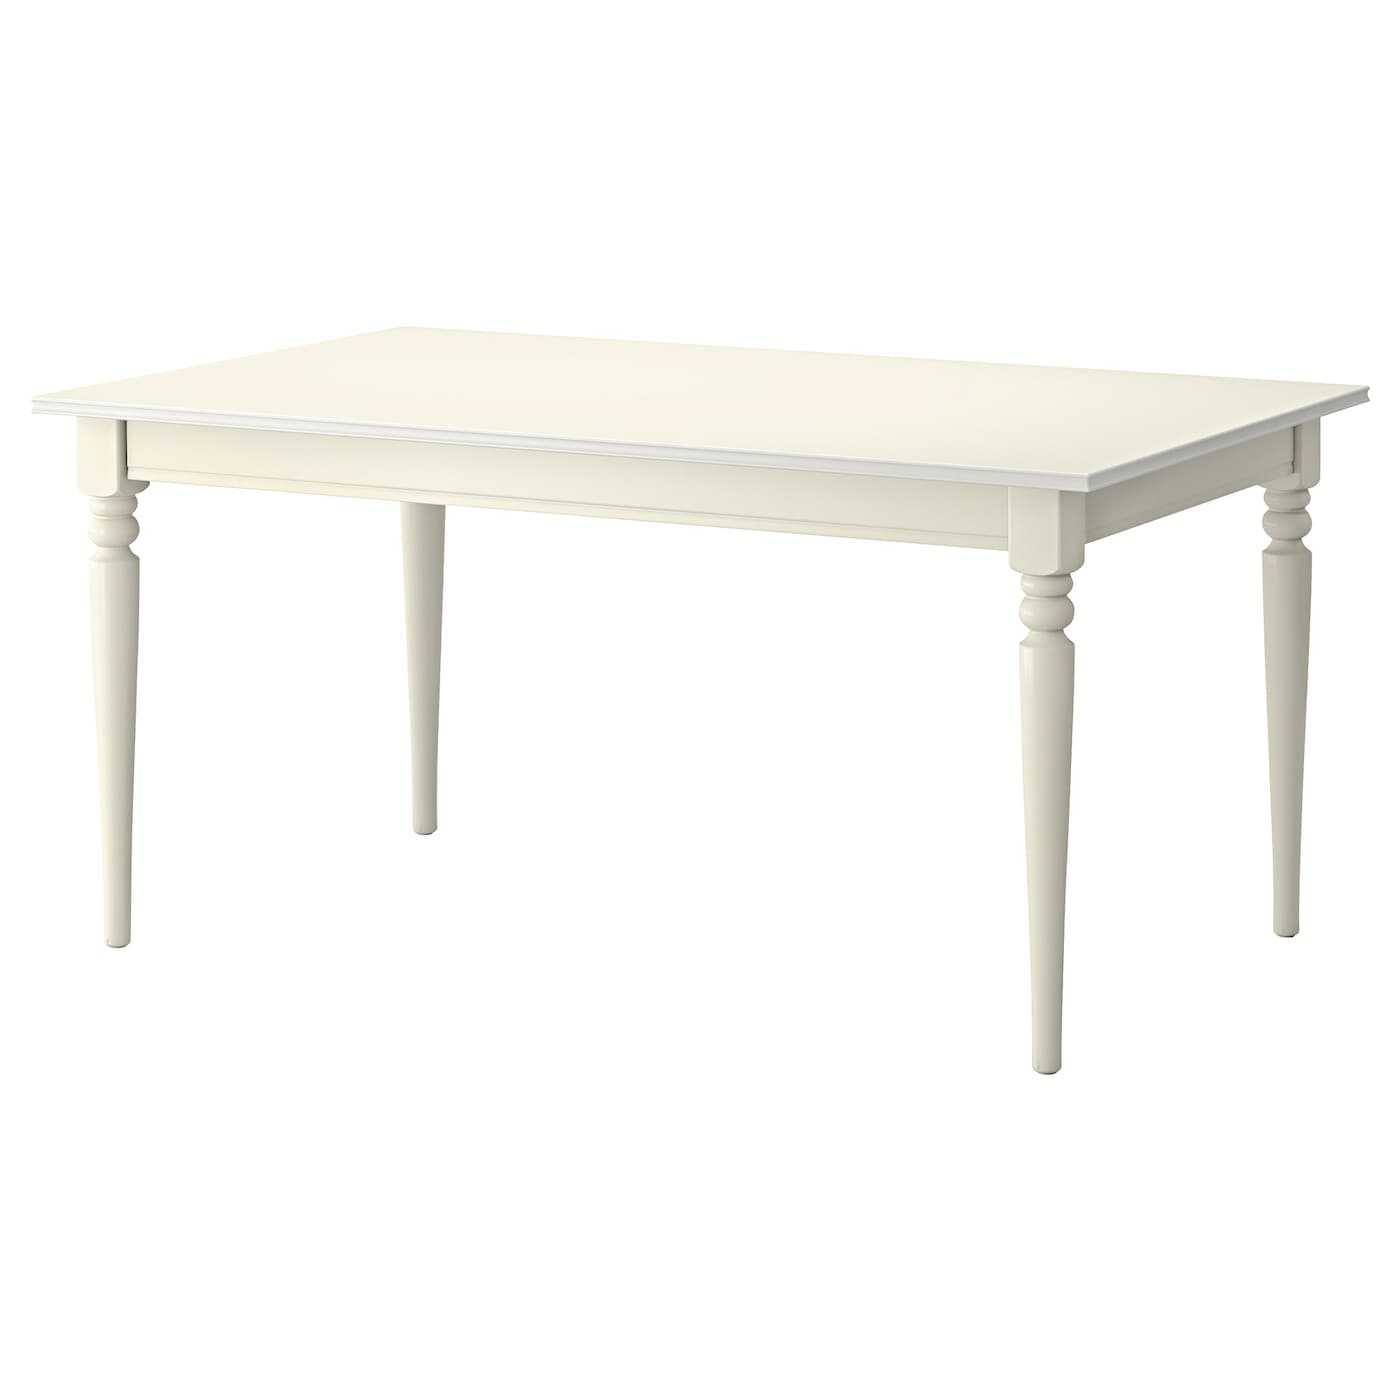 Ikea tables dining tables for Couch 6 personen